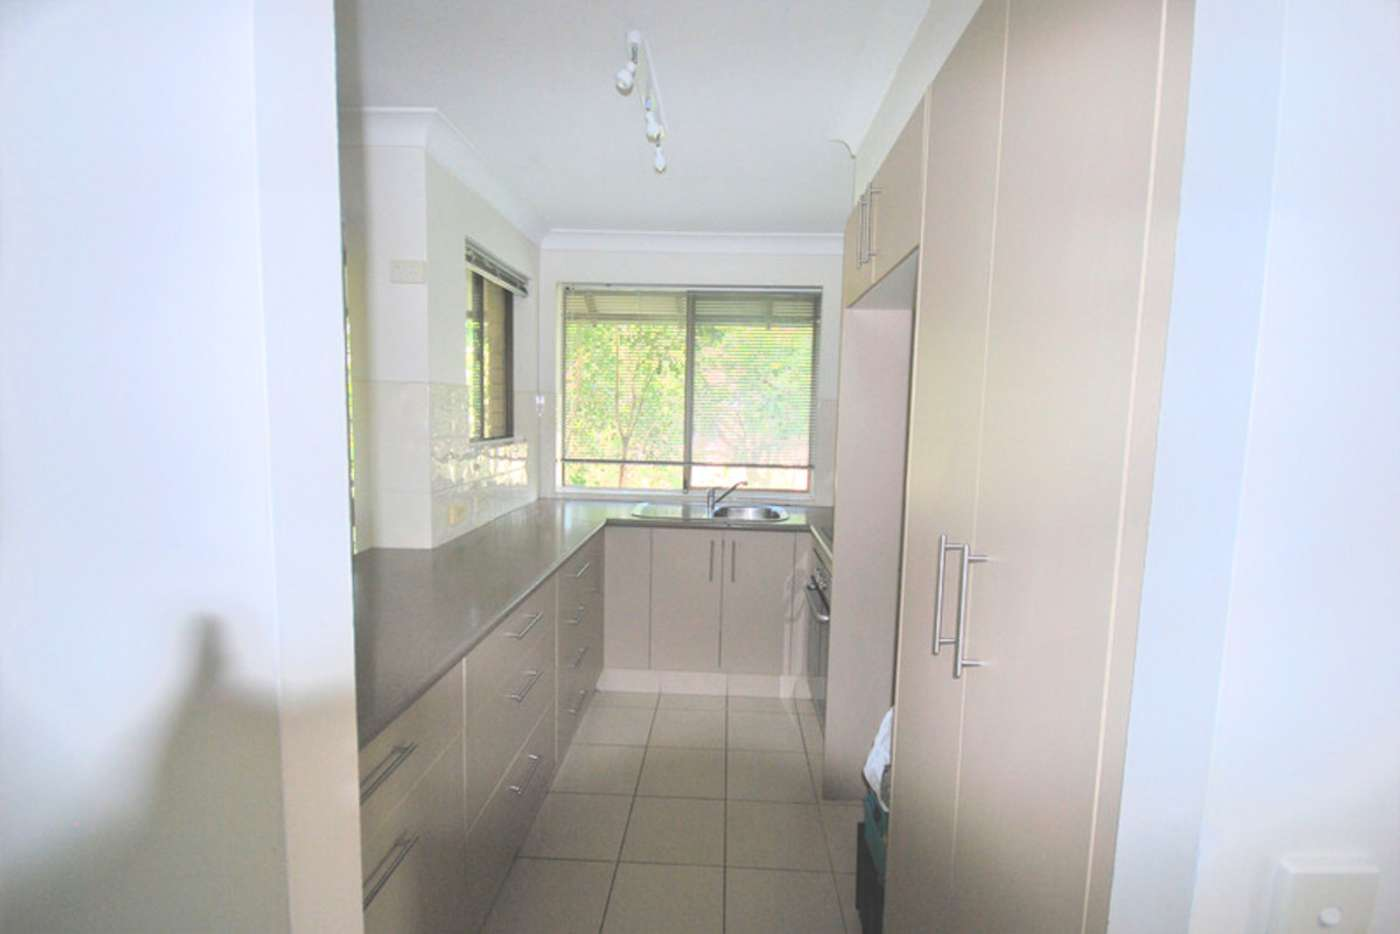 Main view of Homely unit listing, 7/21 Burleigh Street, Burleigh Heads QLD 4220